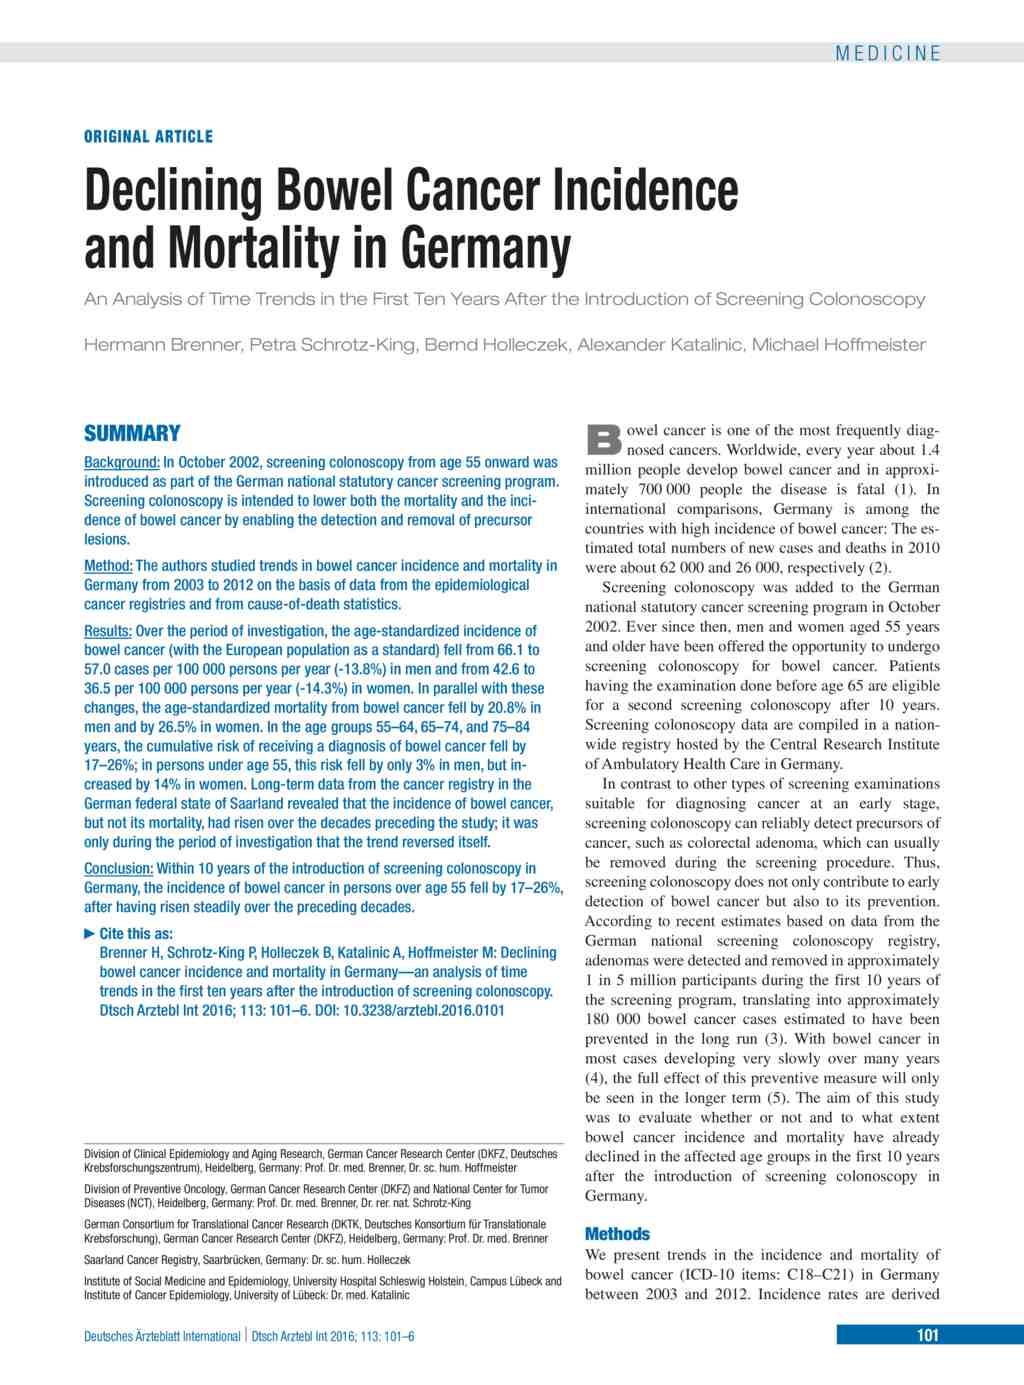 Declining Bowel Cancer Incidence And Mortality In Germany An Analysis Of Time Trends In The First Ten Years After The Introduction Of Screening Colonoscopy 19 02 2016